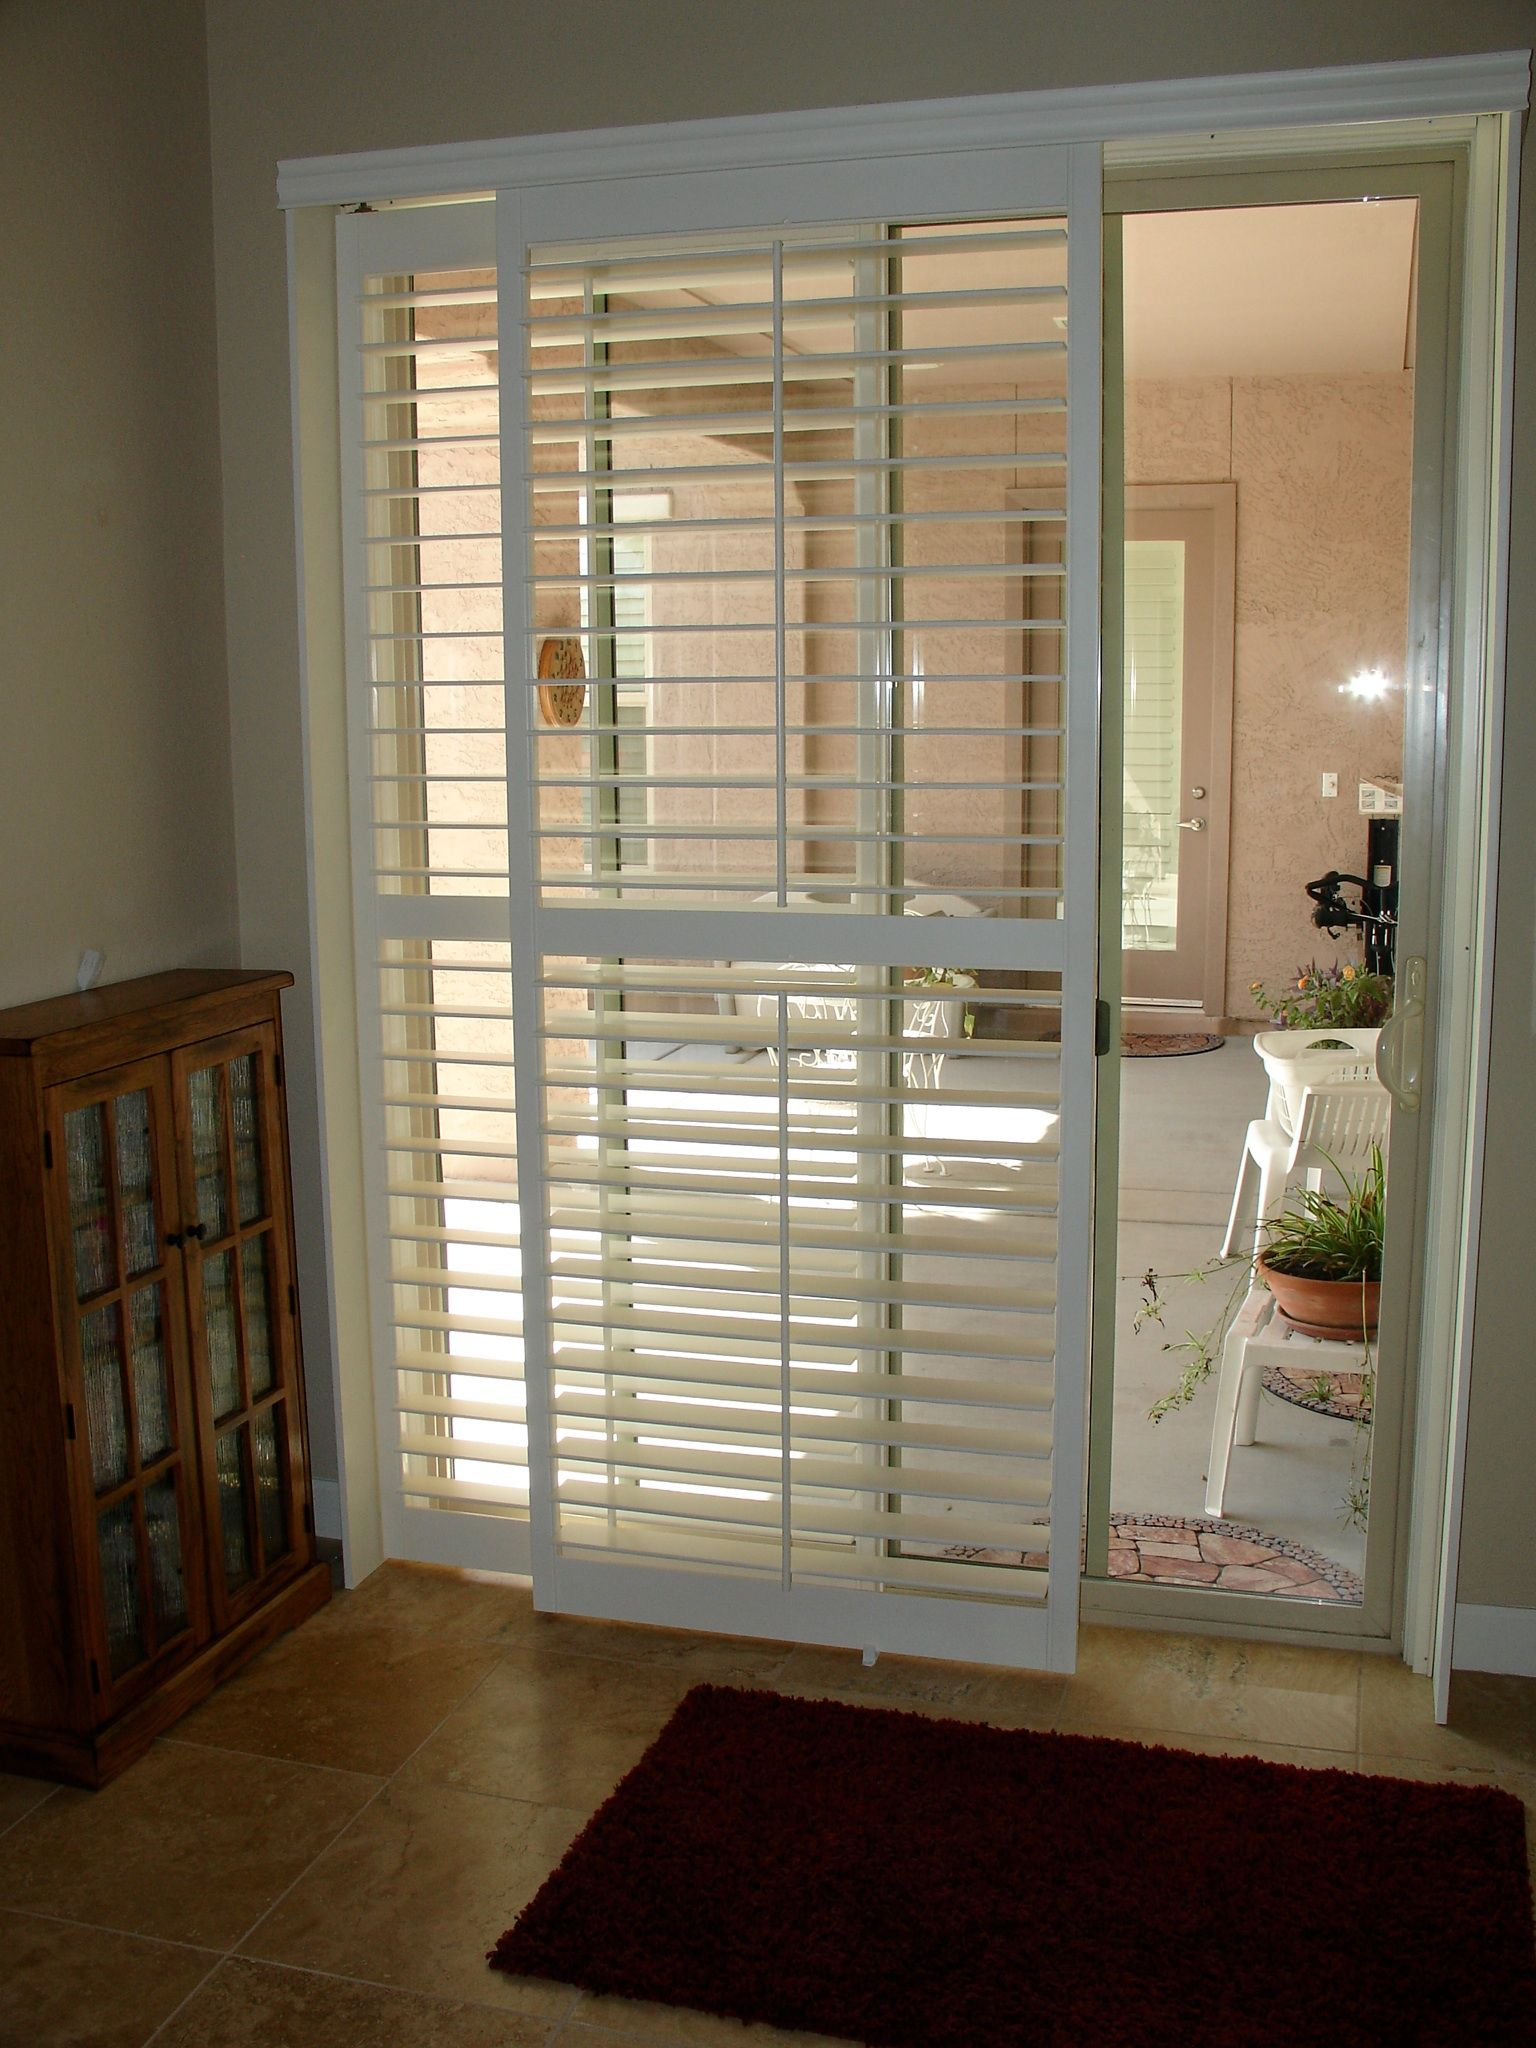 Quot Open Quot Bypass Shutters Allow Full View Even When Panels